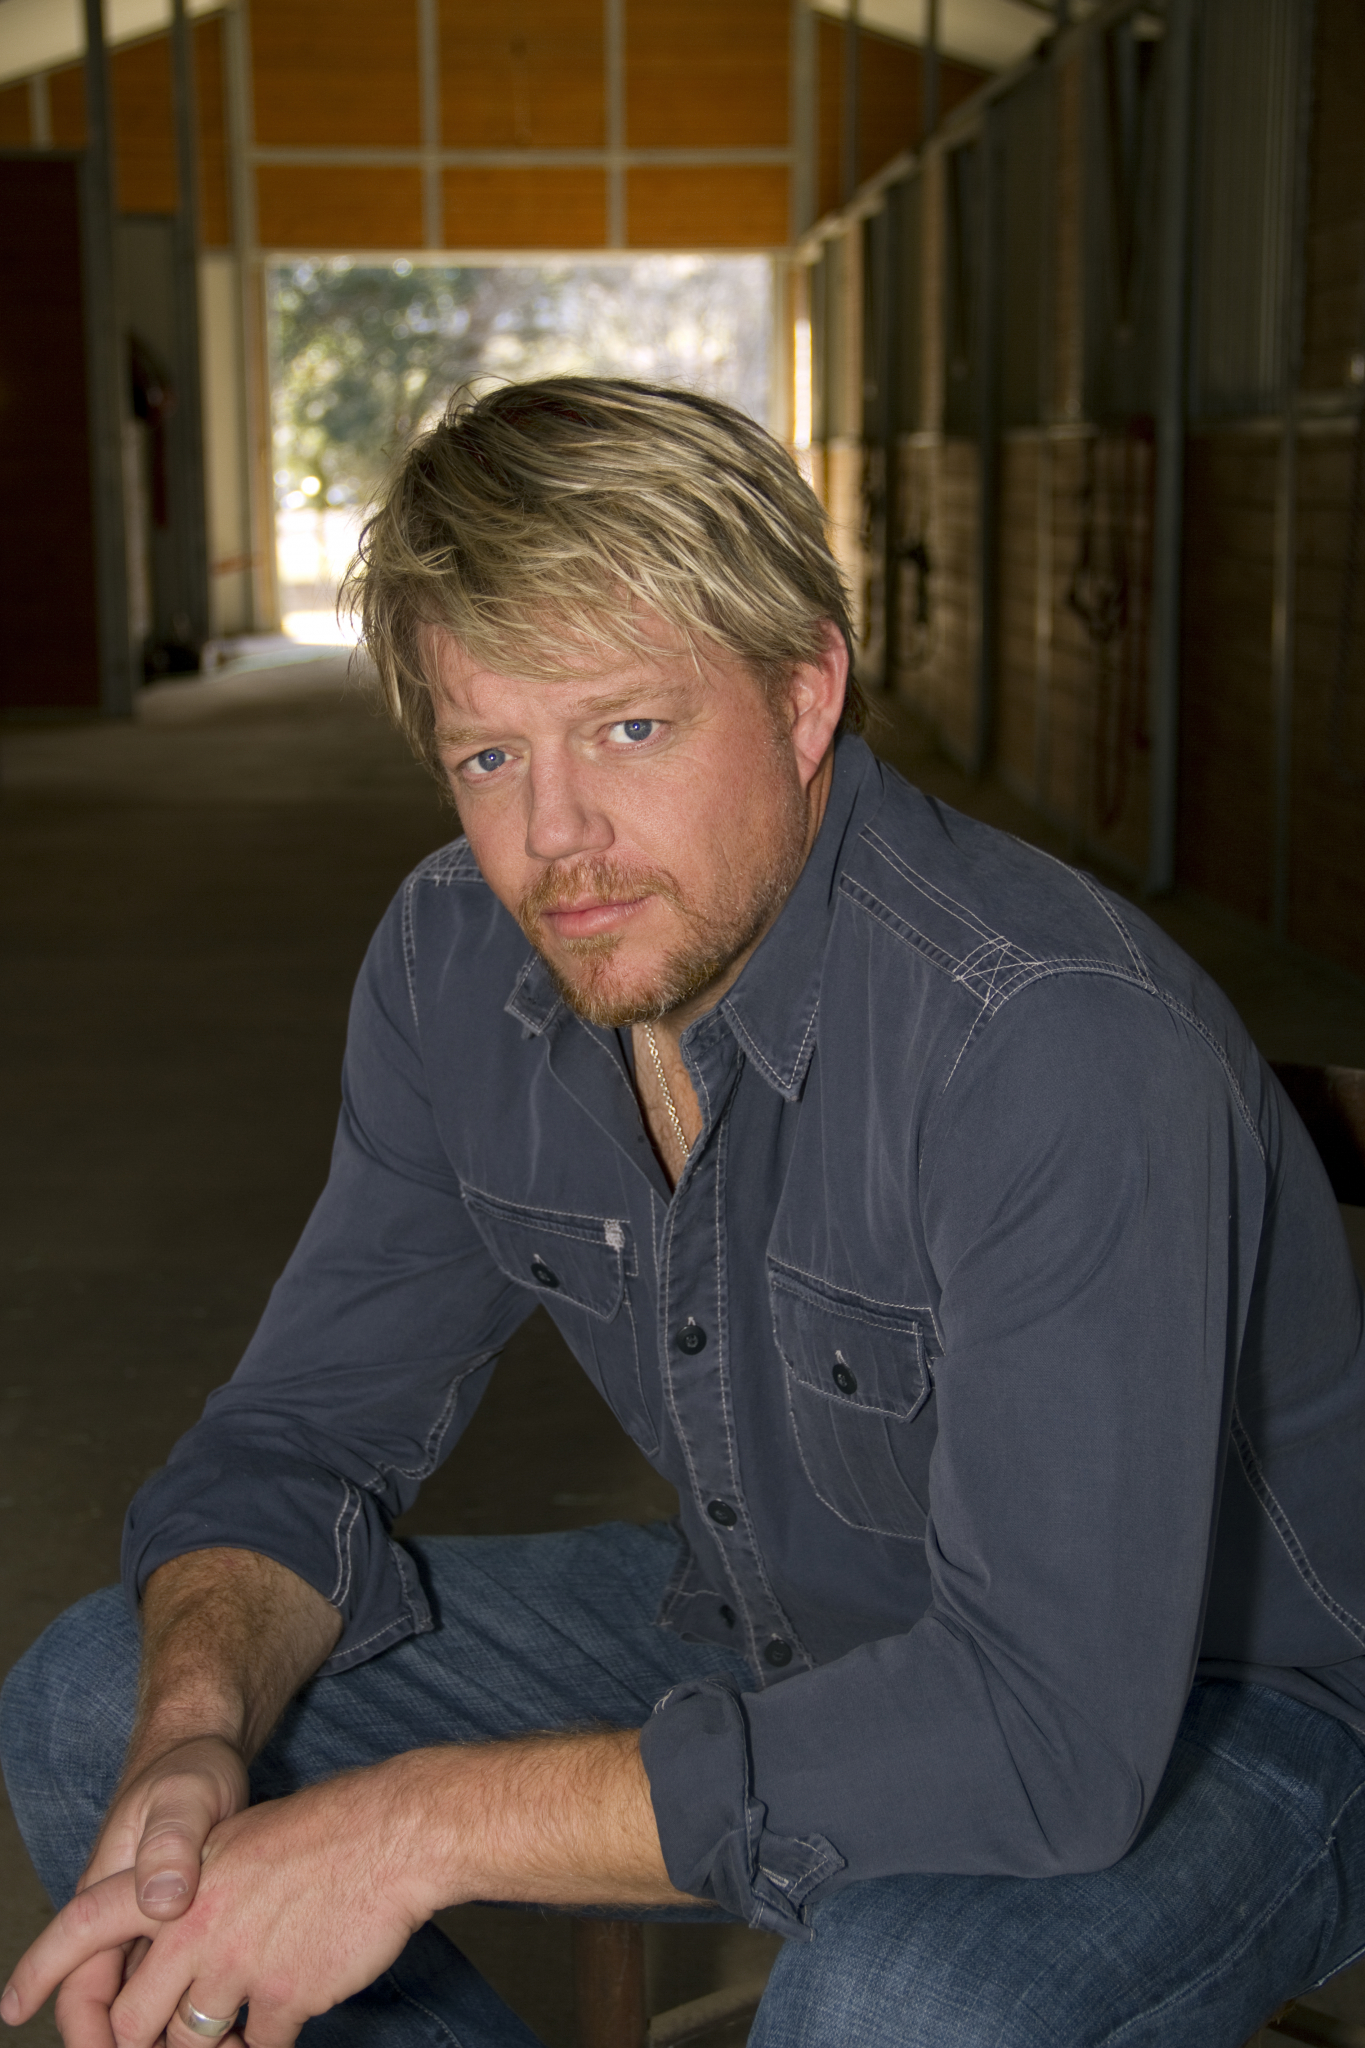 7 questions with Texas country artist Pat Green about his new Houston restaurant...